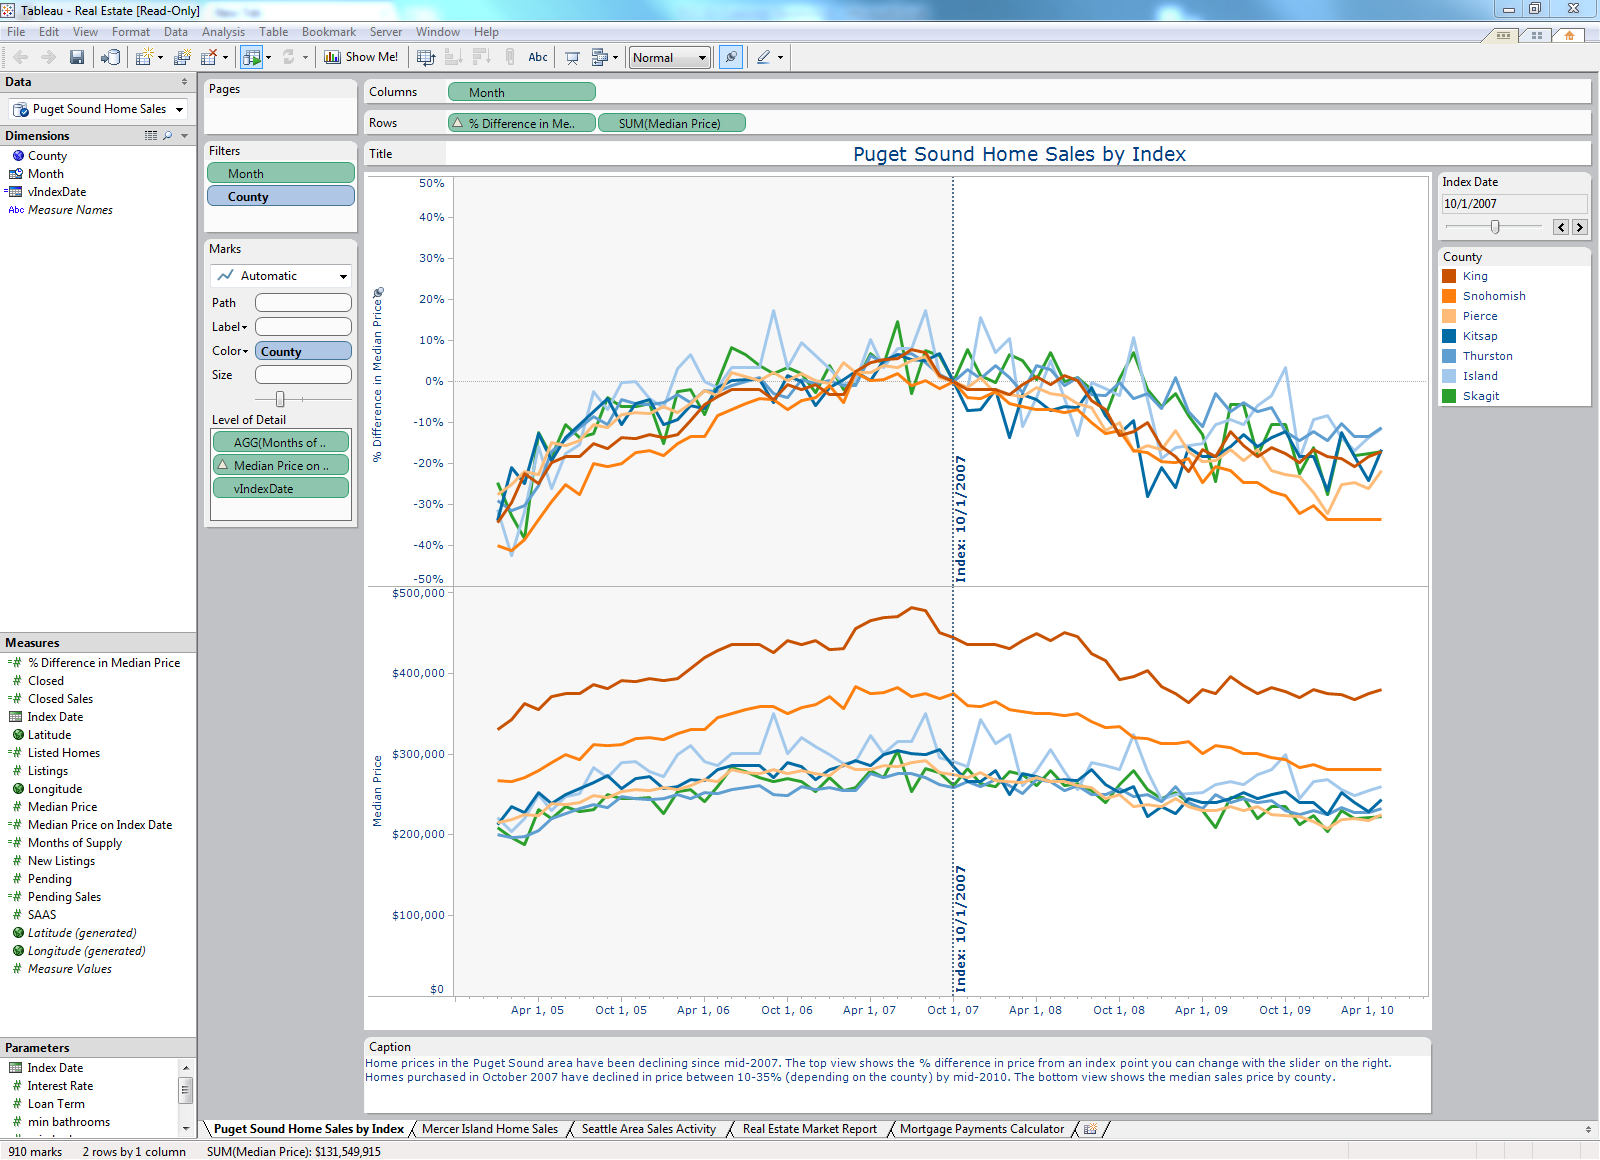 Tableau Software - Intuitive User Interface